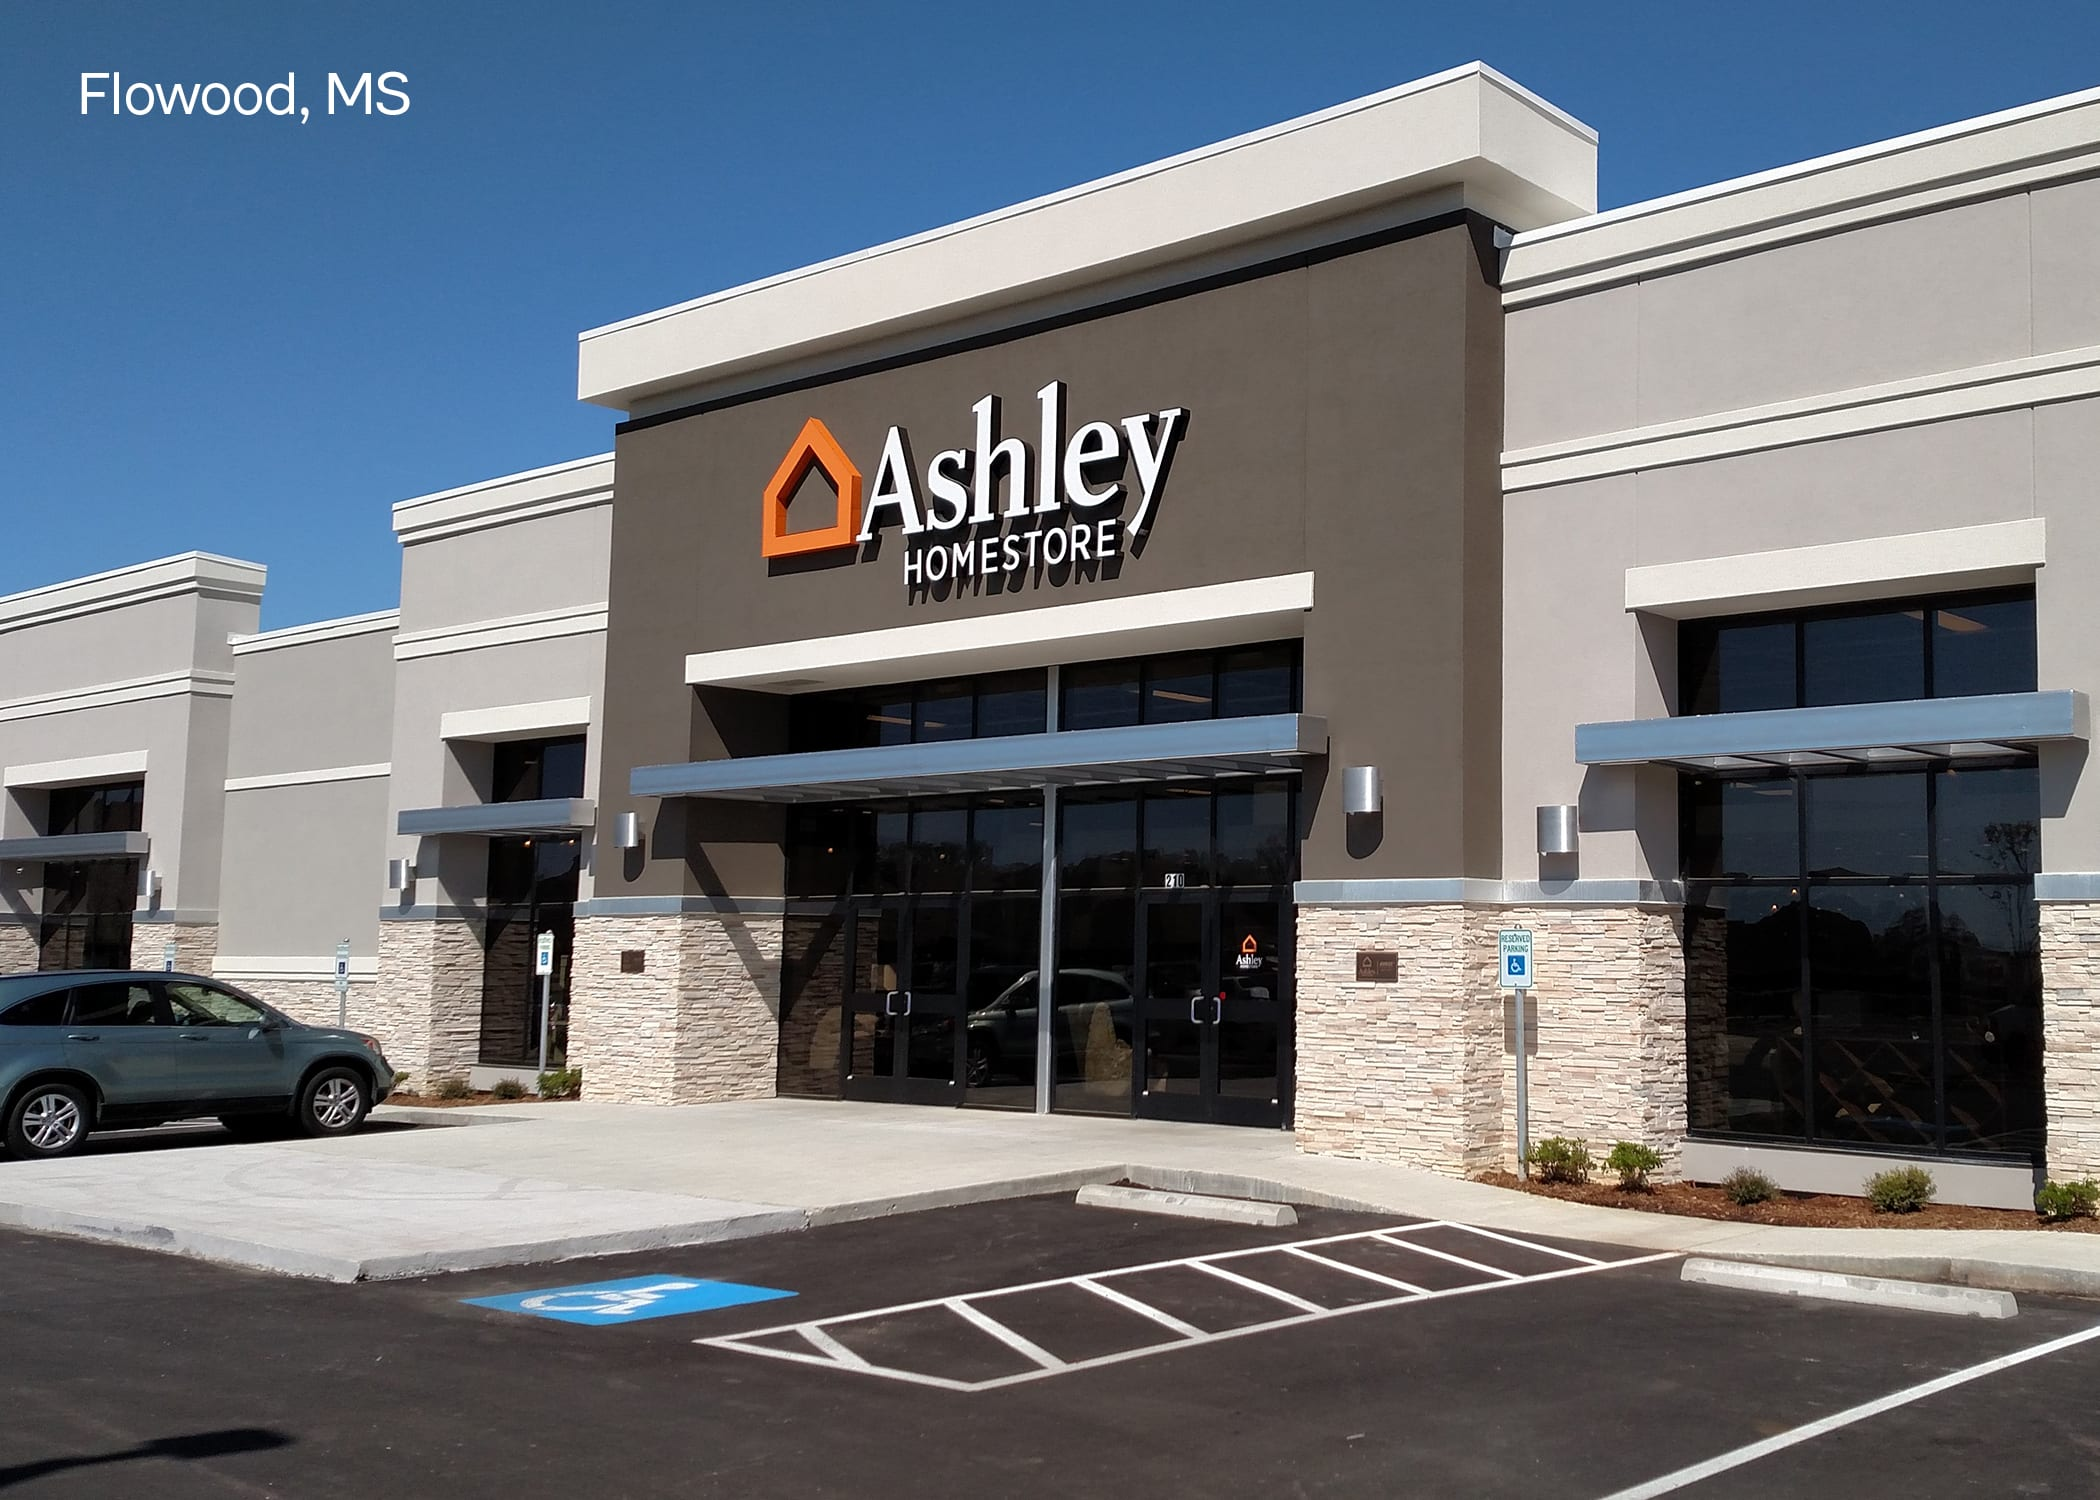 Furniture and Mattress Store at 210 Promenade Blvd, Flowood, MS | Ashley HomeStore